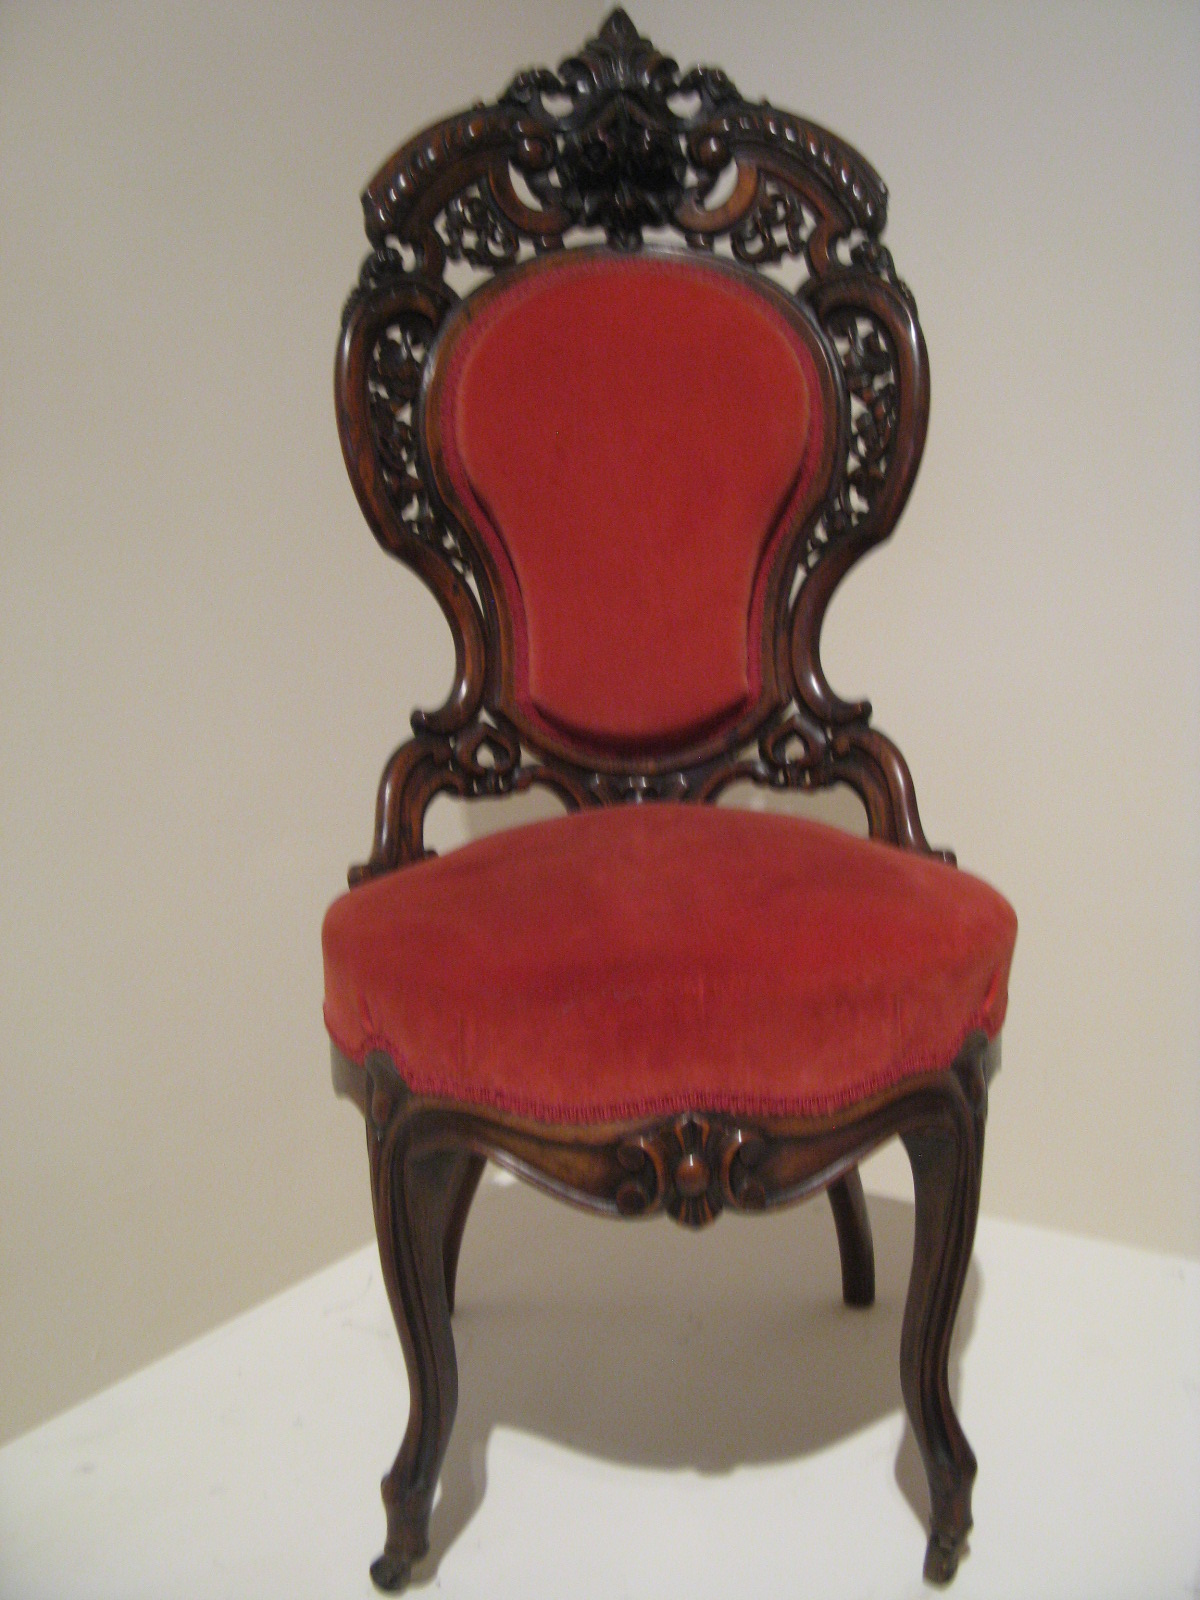 in fact most old time chairs were uncomfortable to sit in including